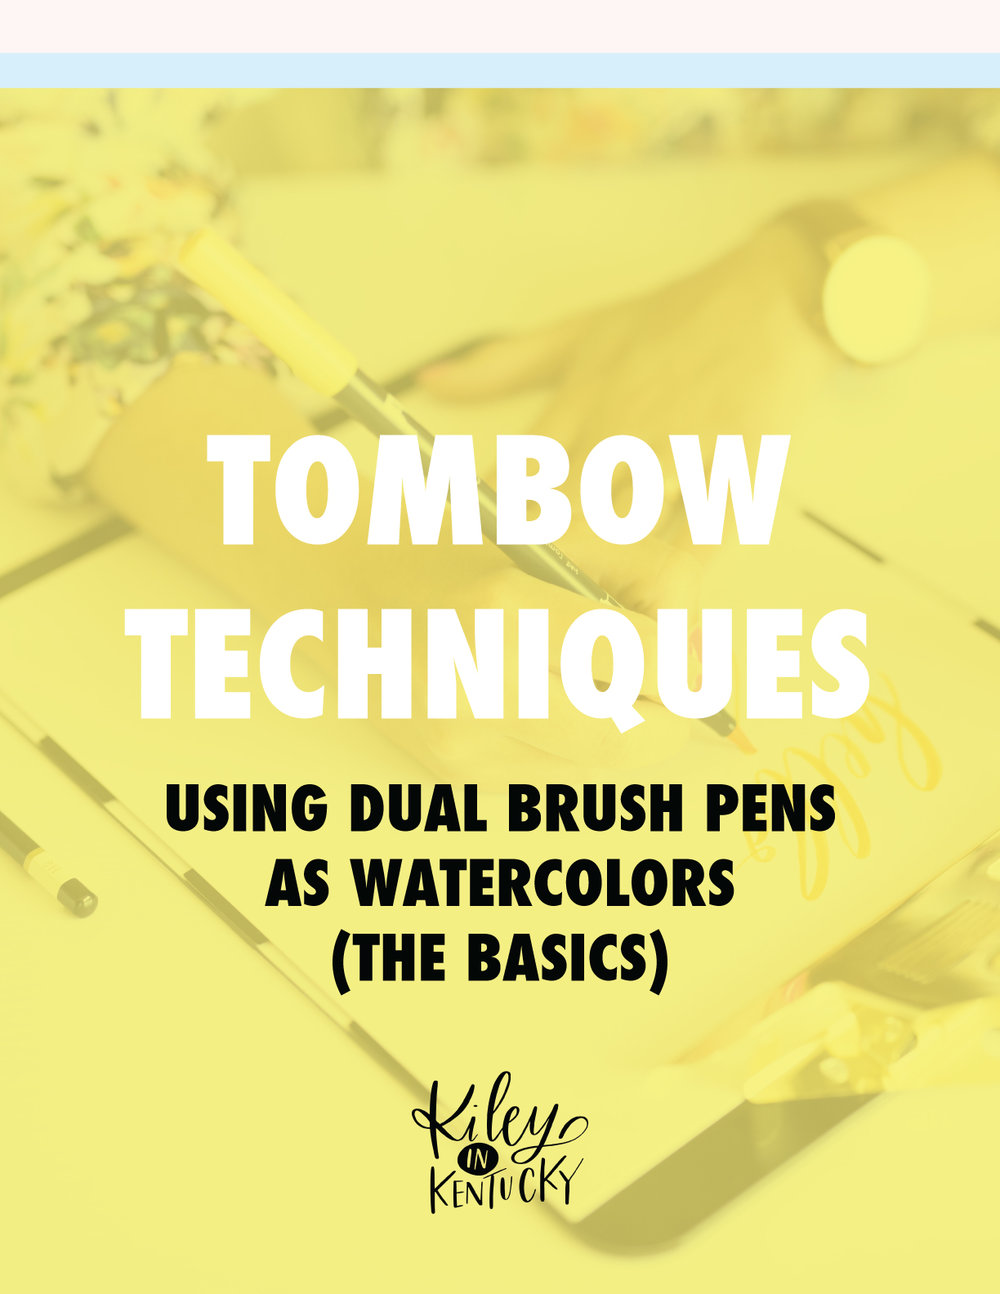 Tombow Dual Brush Pens as Watercolors